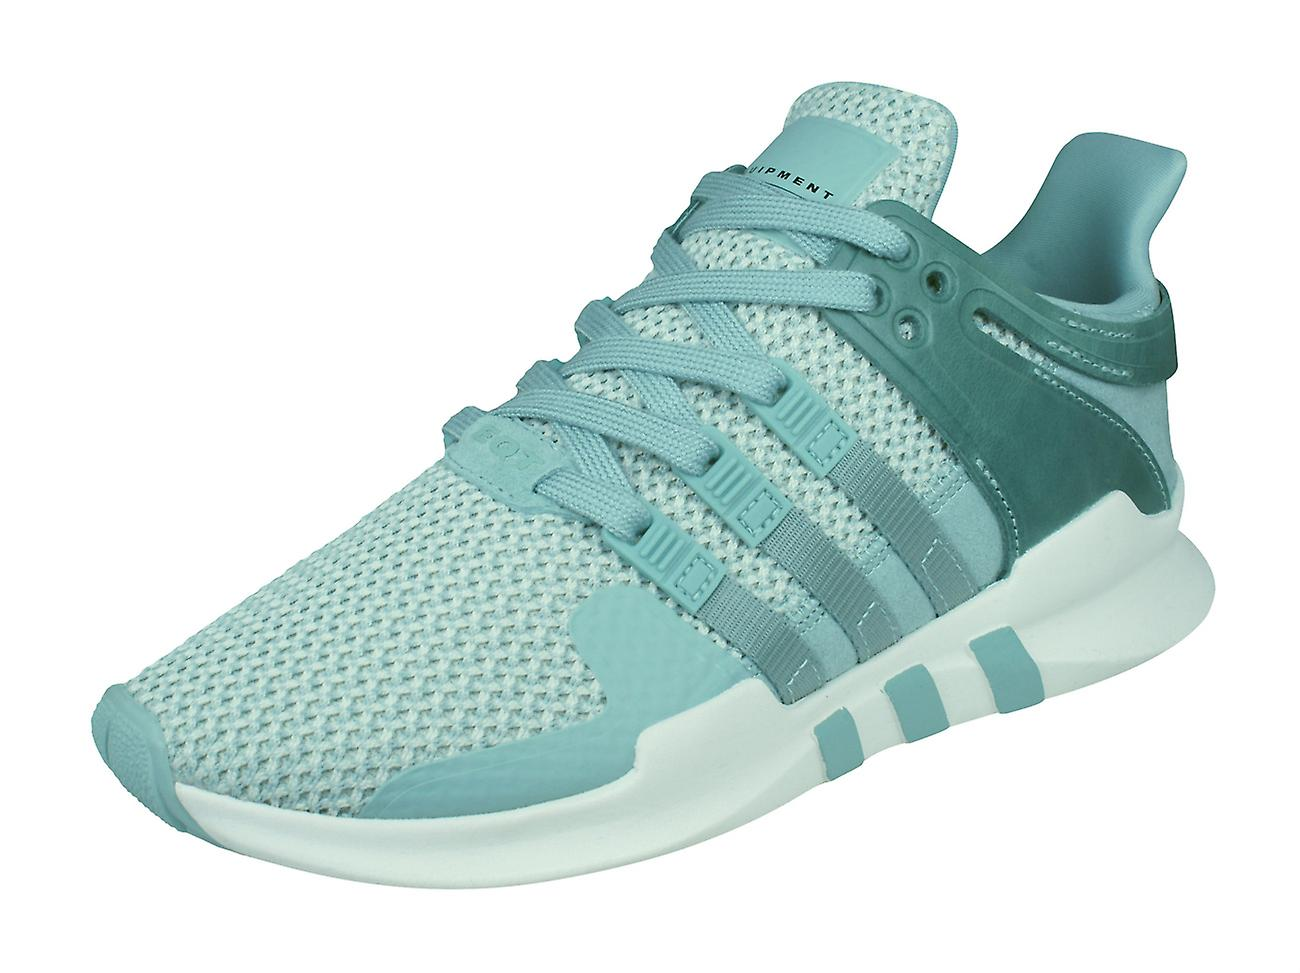 adidas Originals EQT Support Adv Womens Trainers - Green